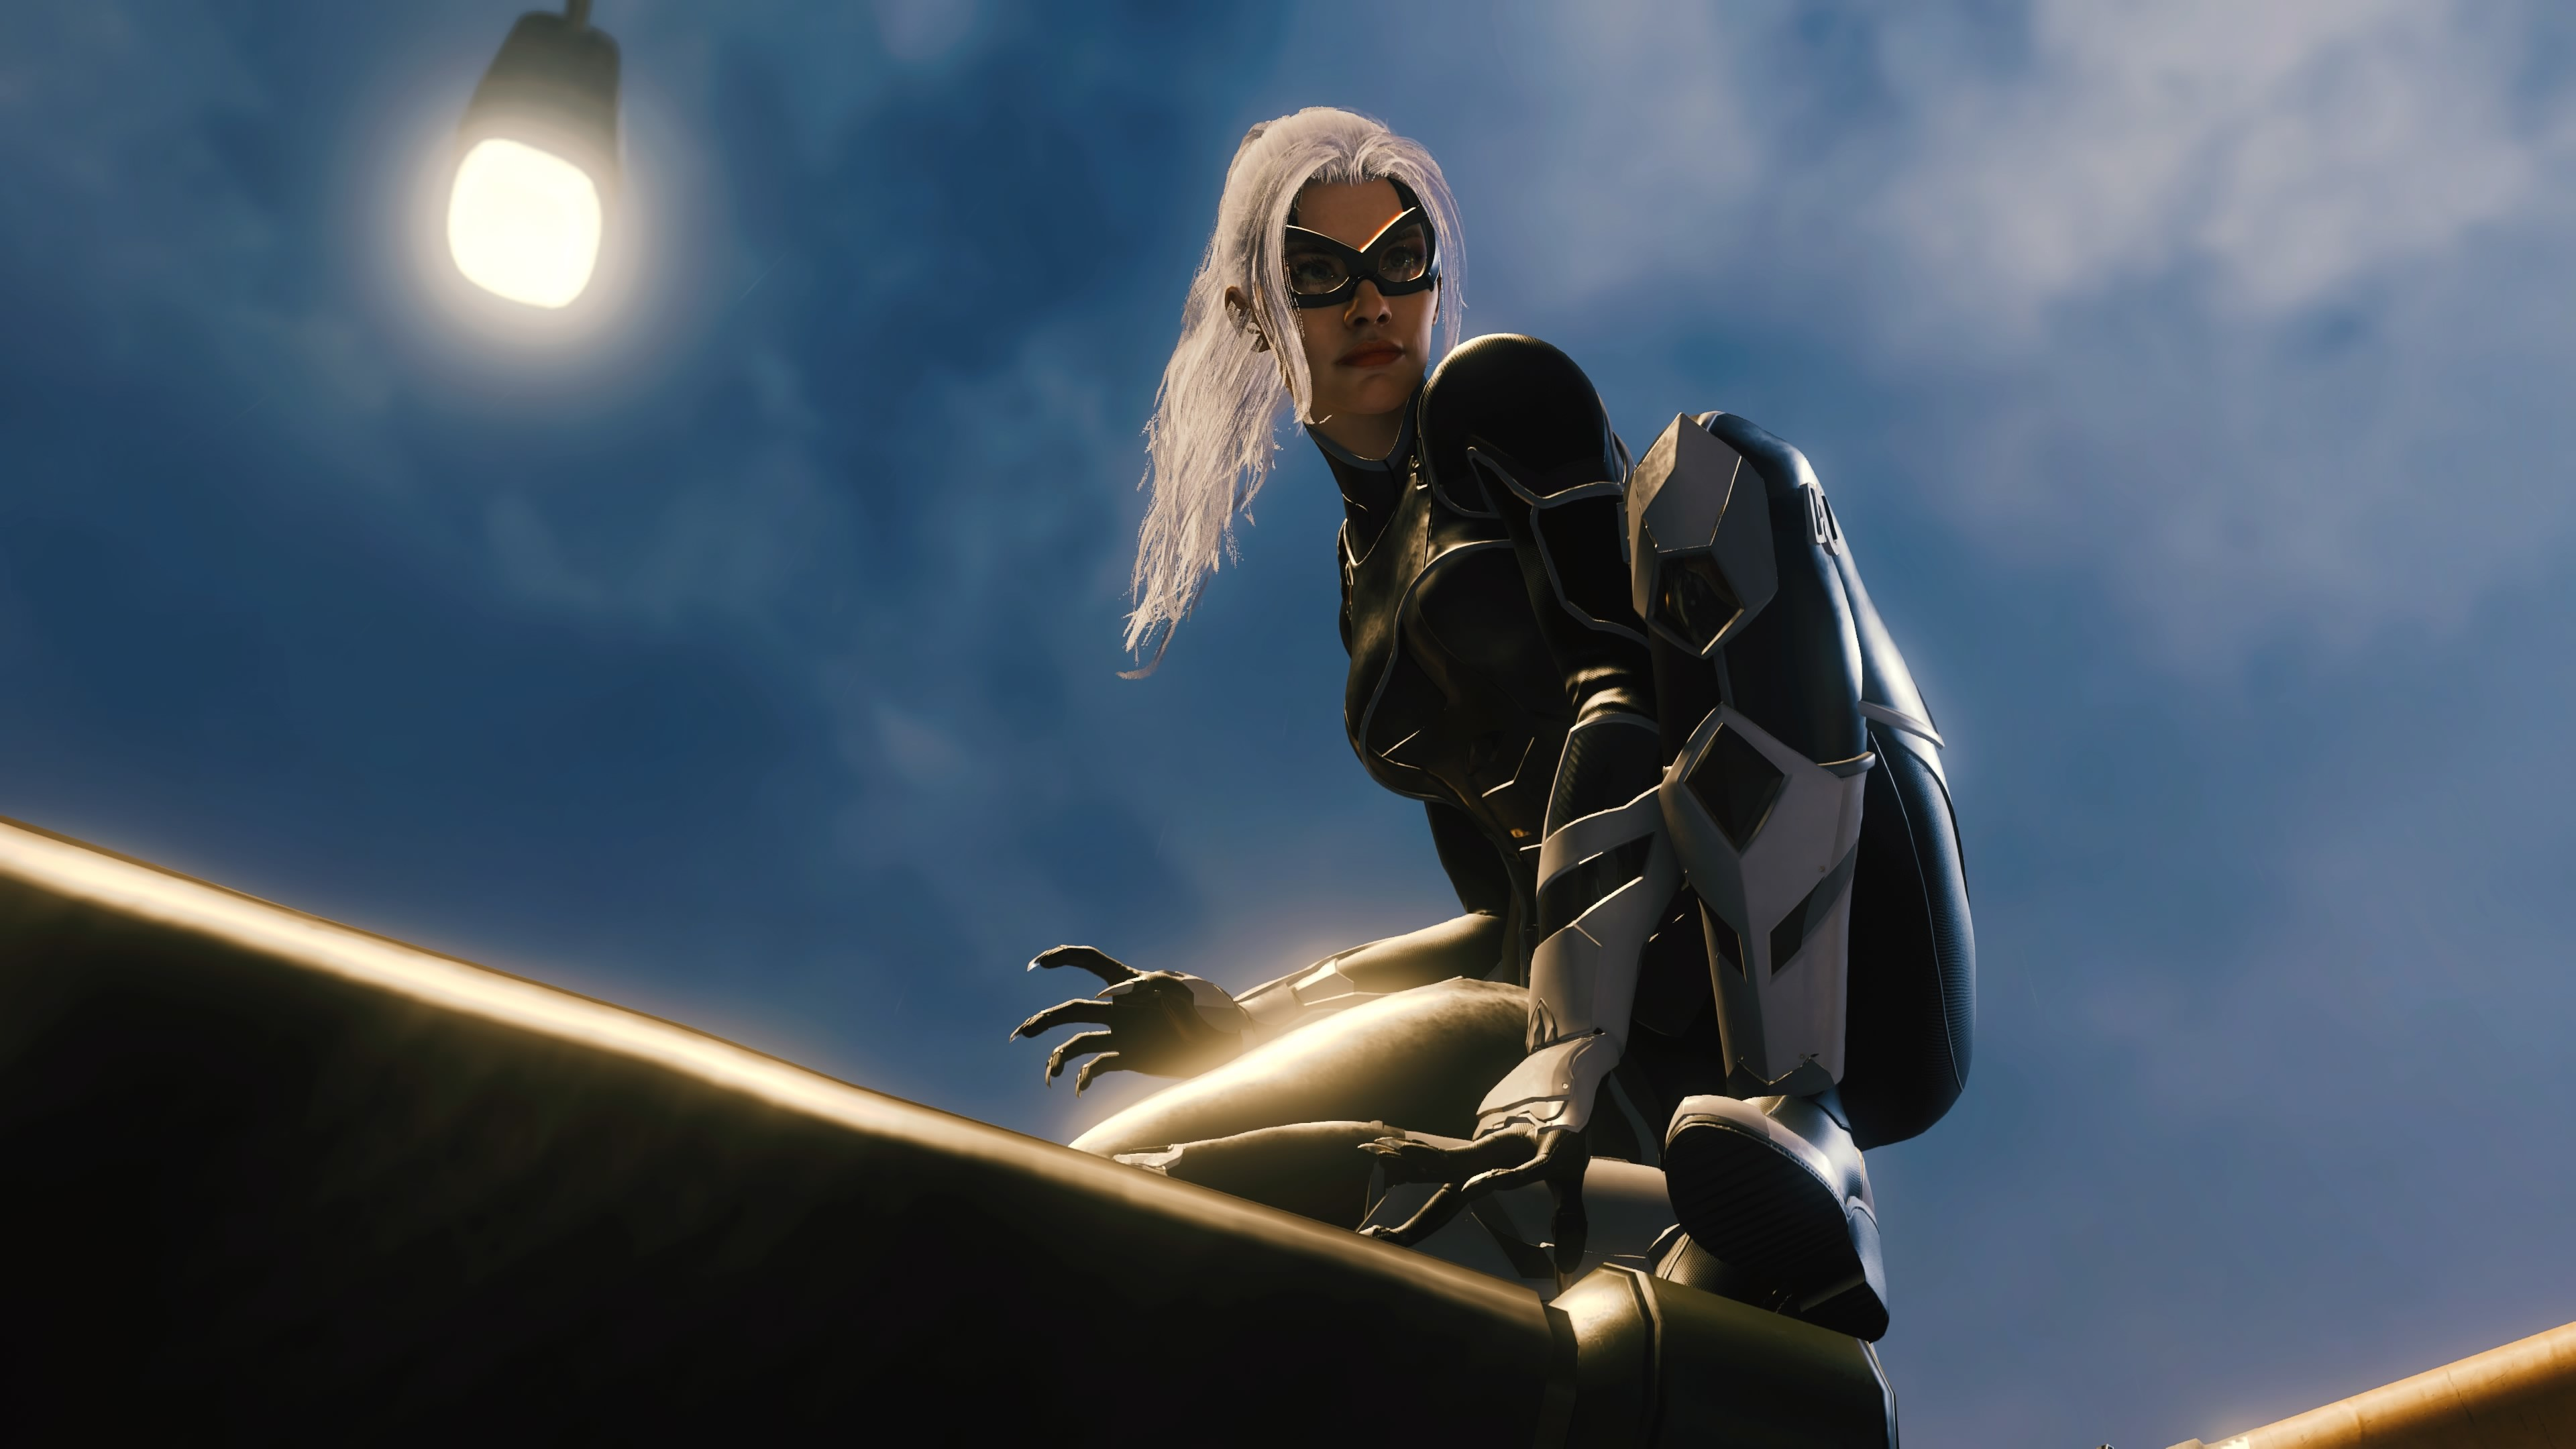 Res: 3840x2160, Felicia Hardy In Spiderman Ps4